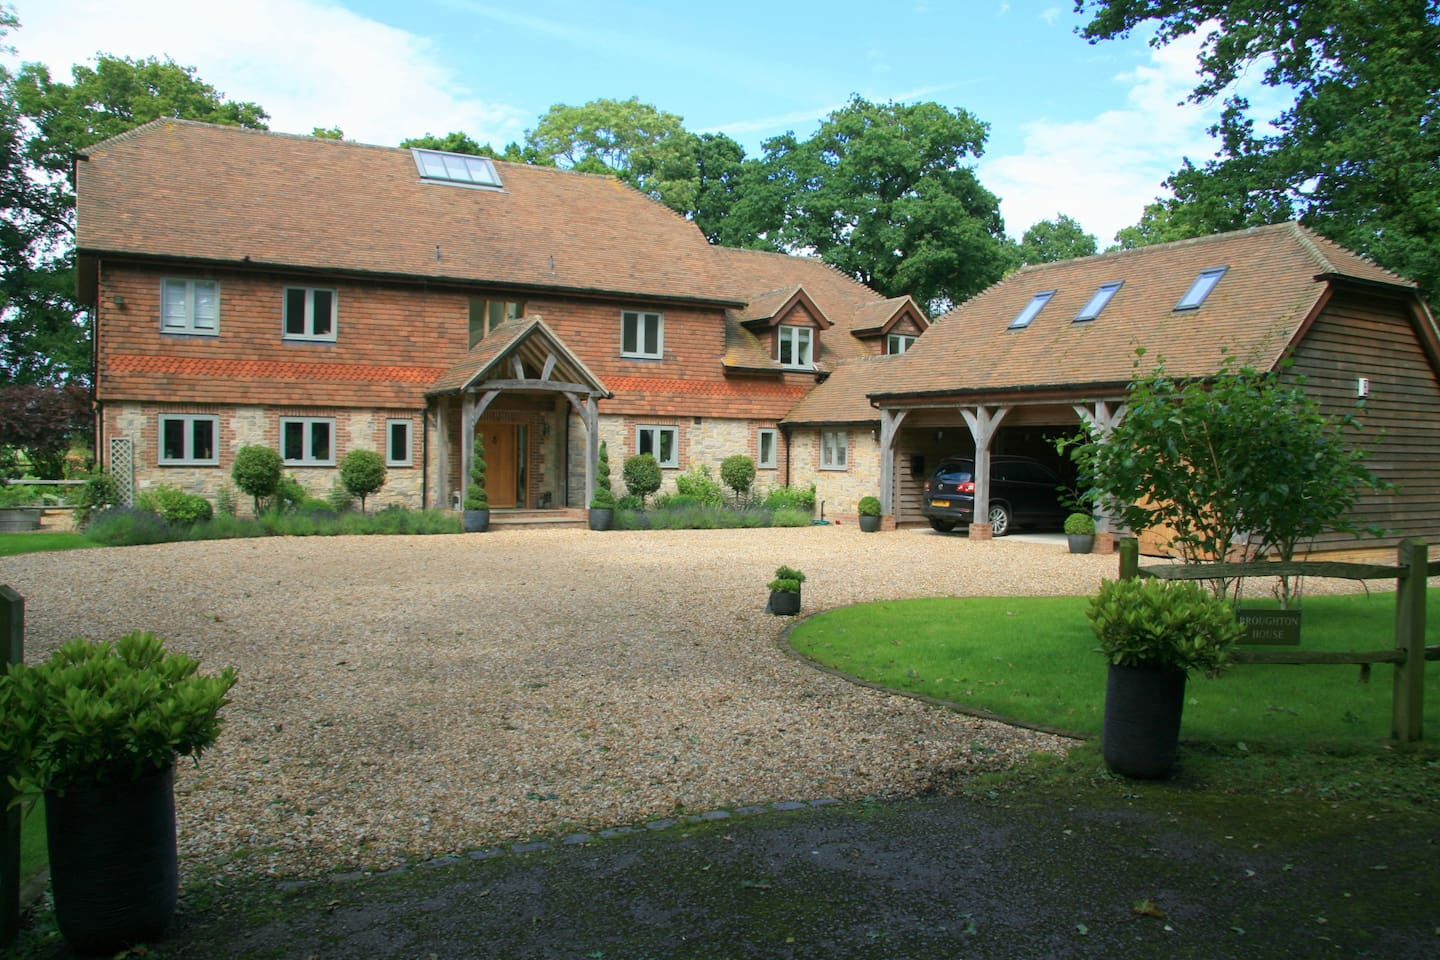 The room is in the annexe, which is above the garage and separate from the main house.